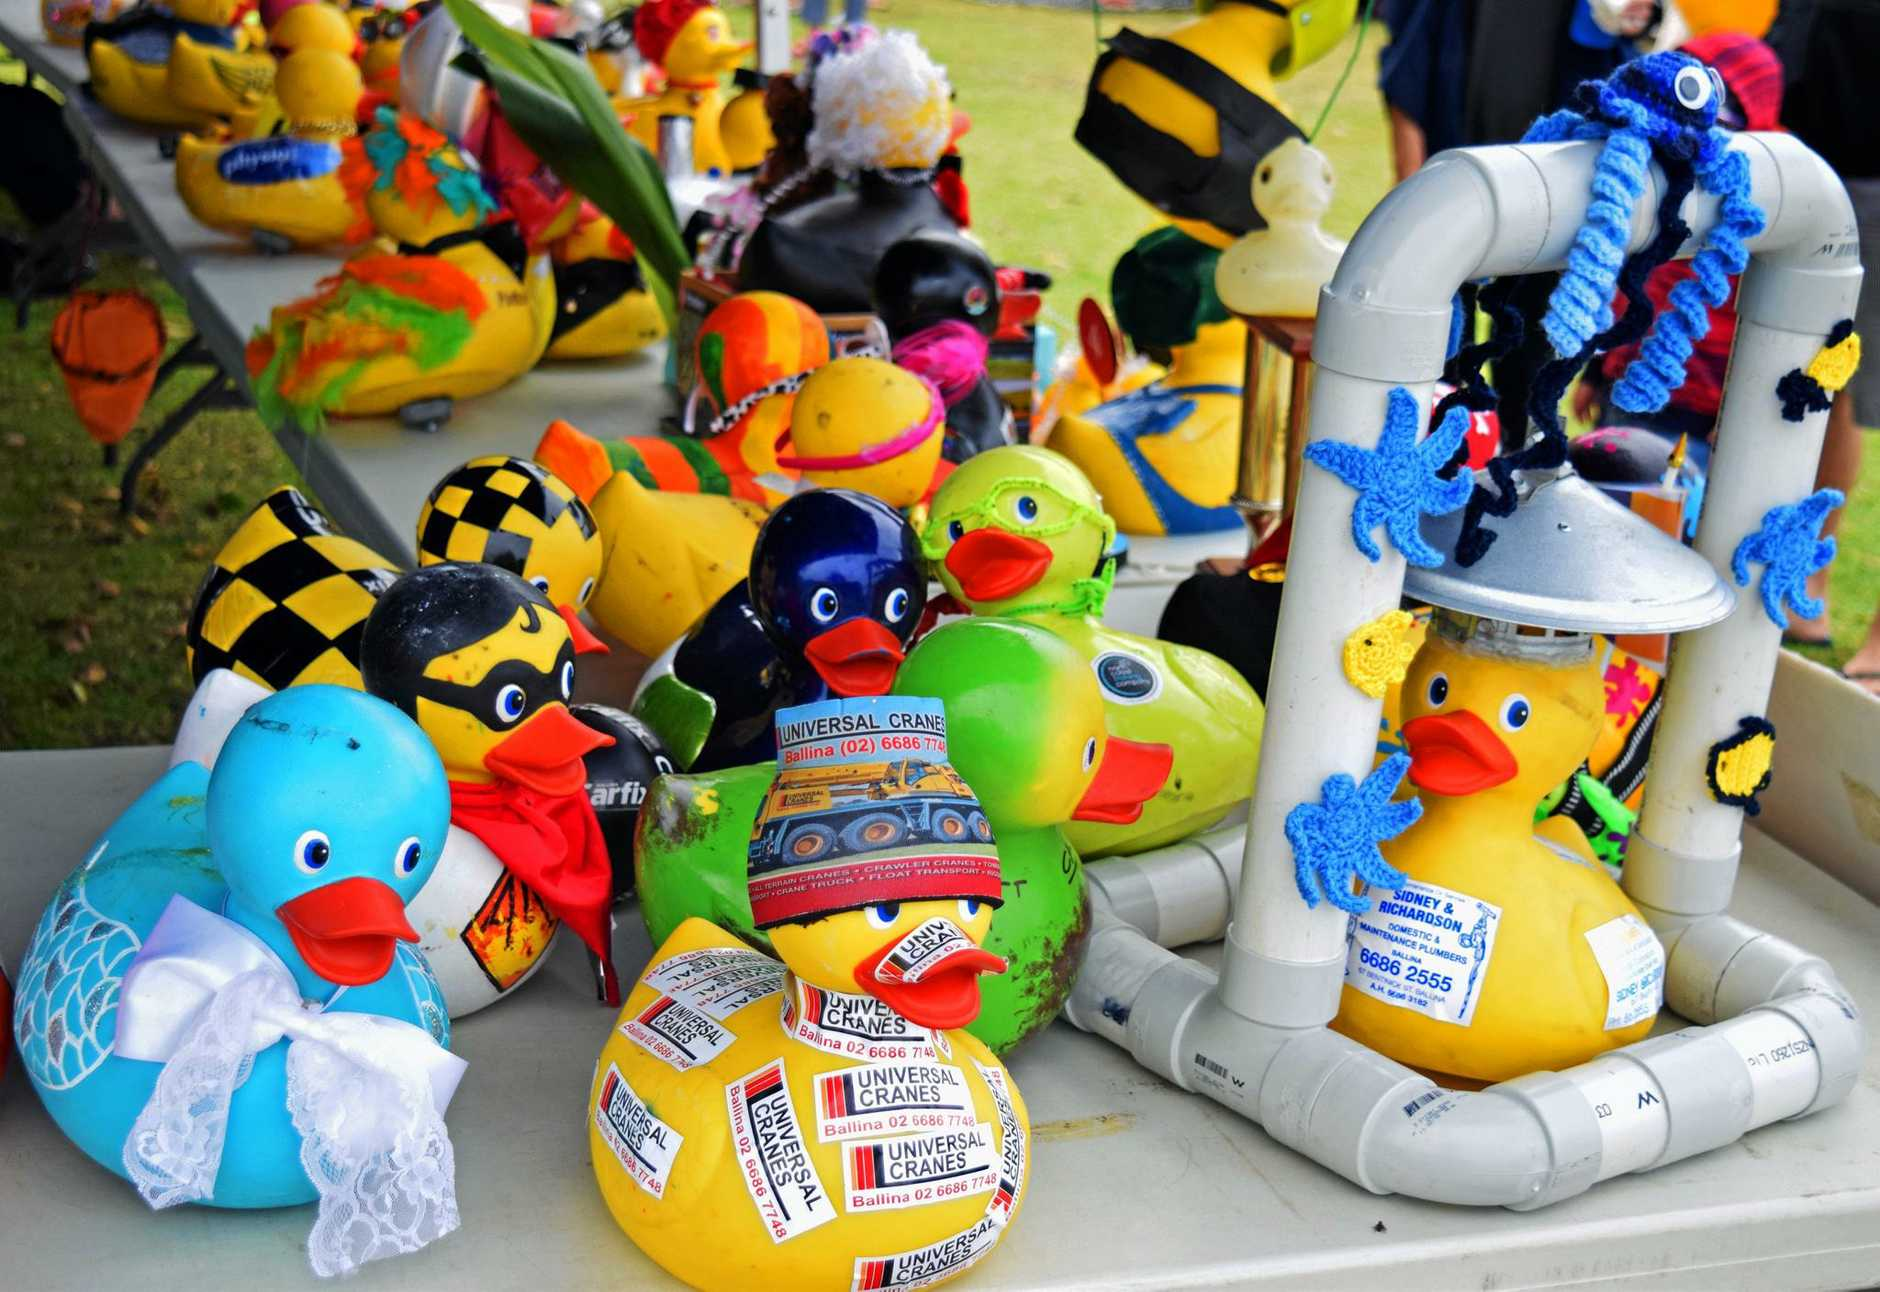 Dressed-up ducks in the corporate category of the Rotary Great Duck Race in Ballina.